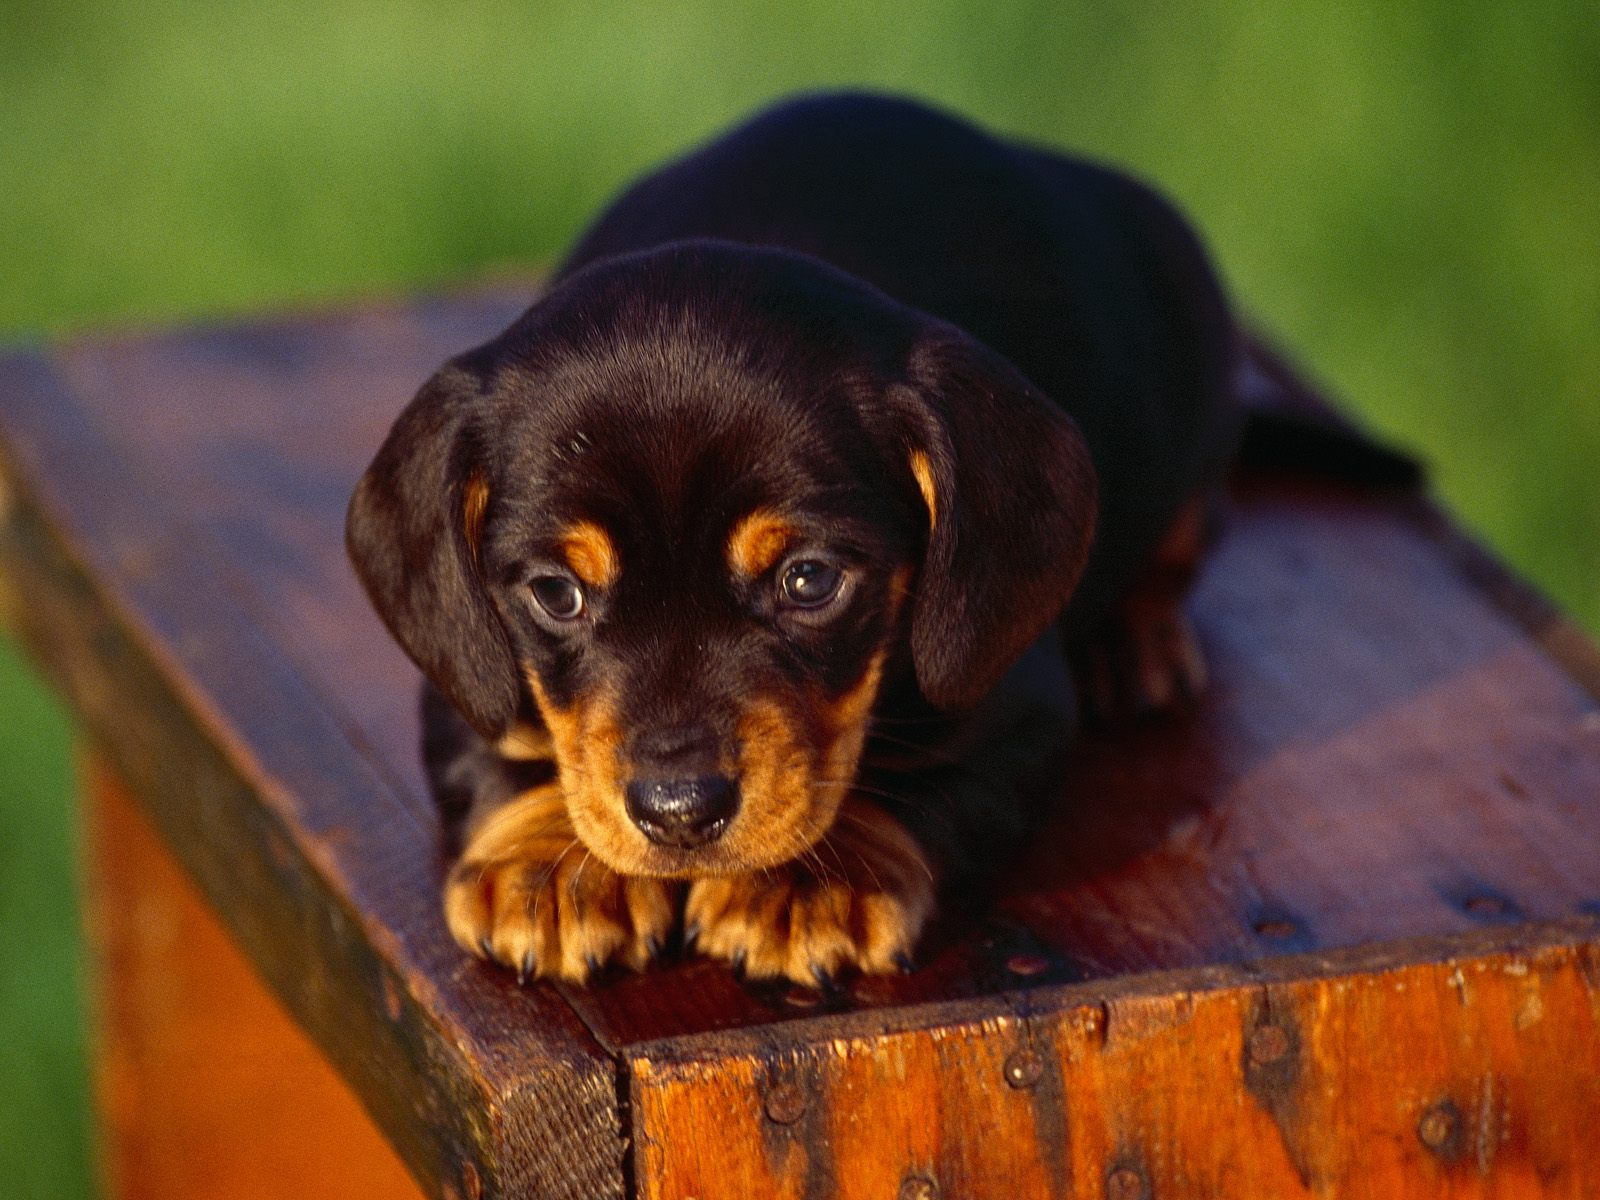 Dachshund German Shepherd Mix Puppies Dogs wallpapers